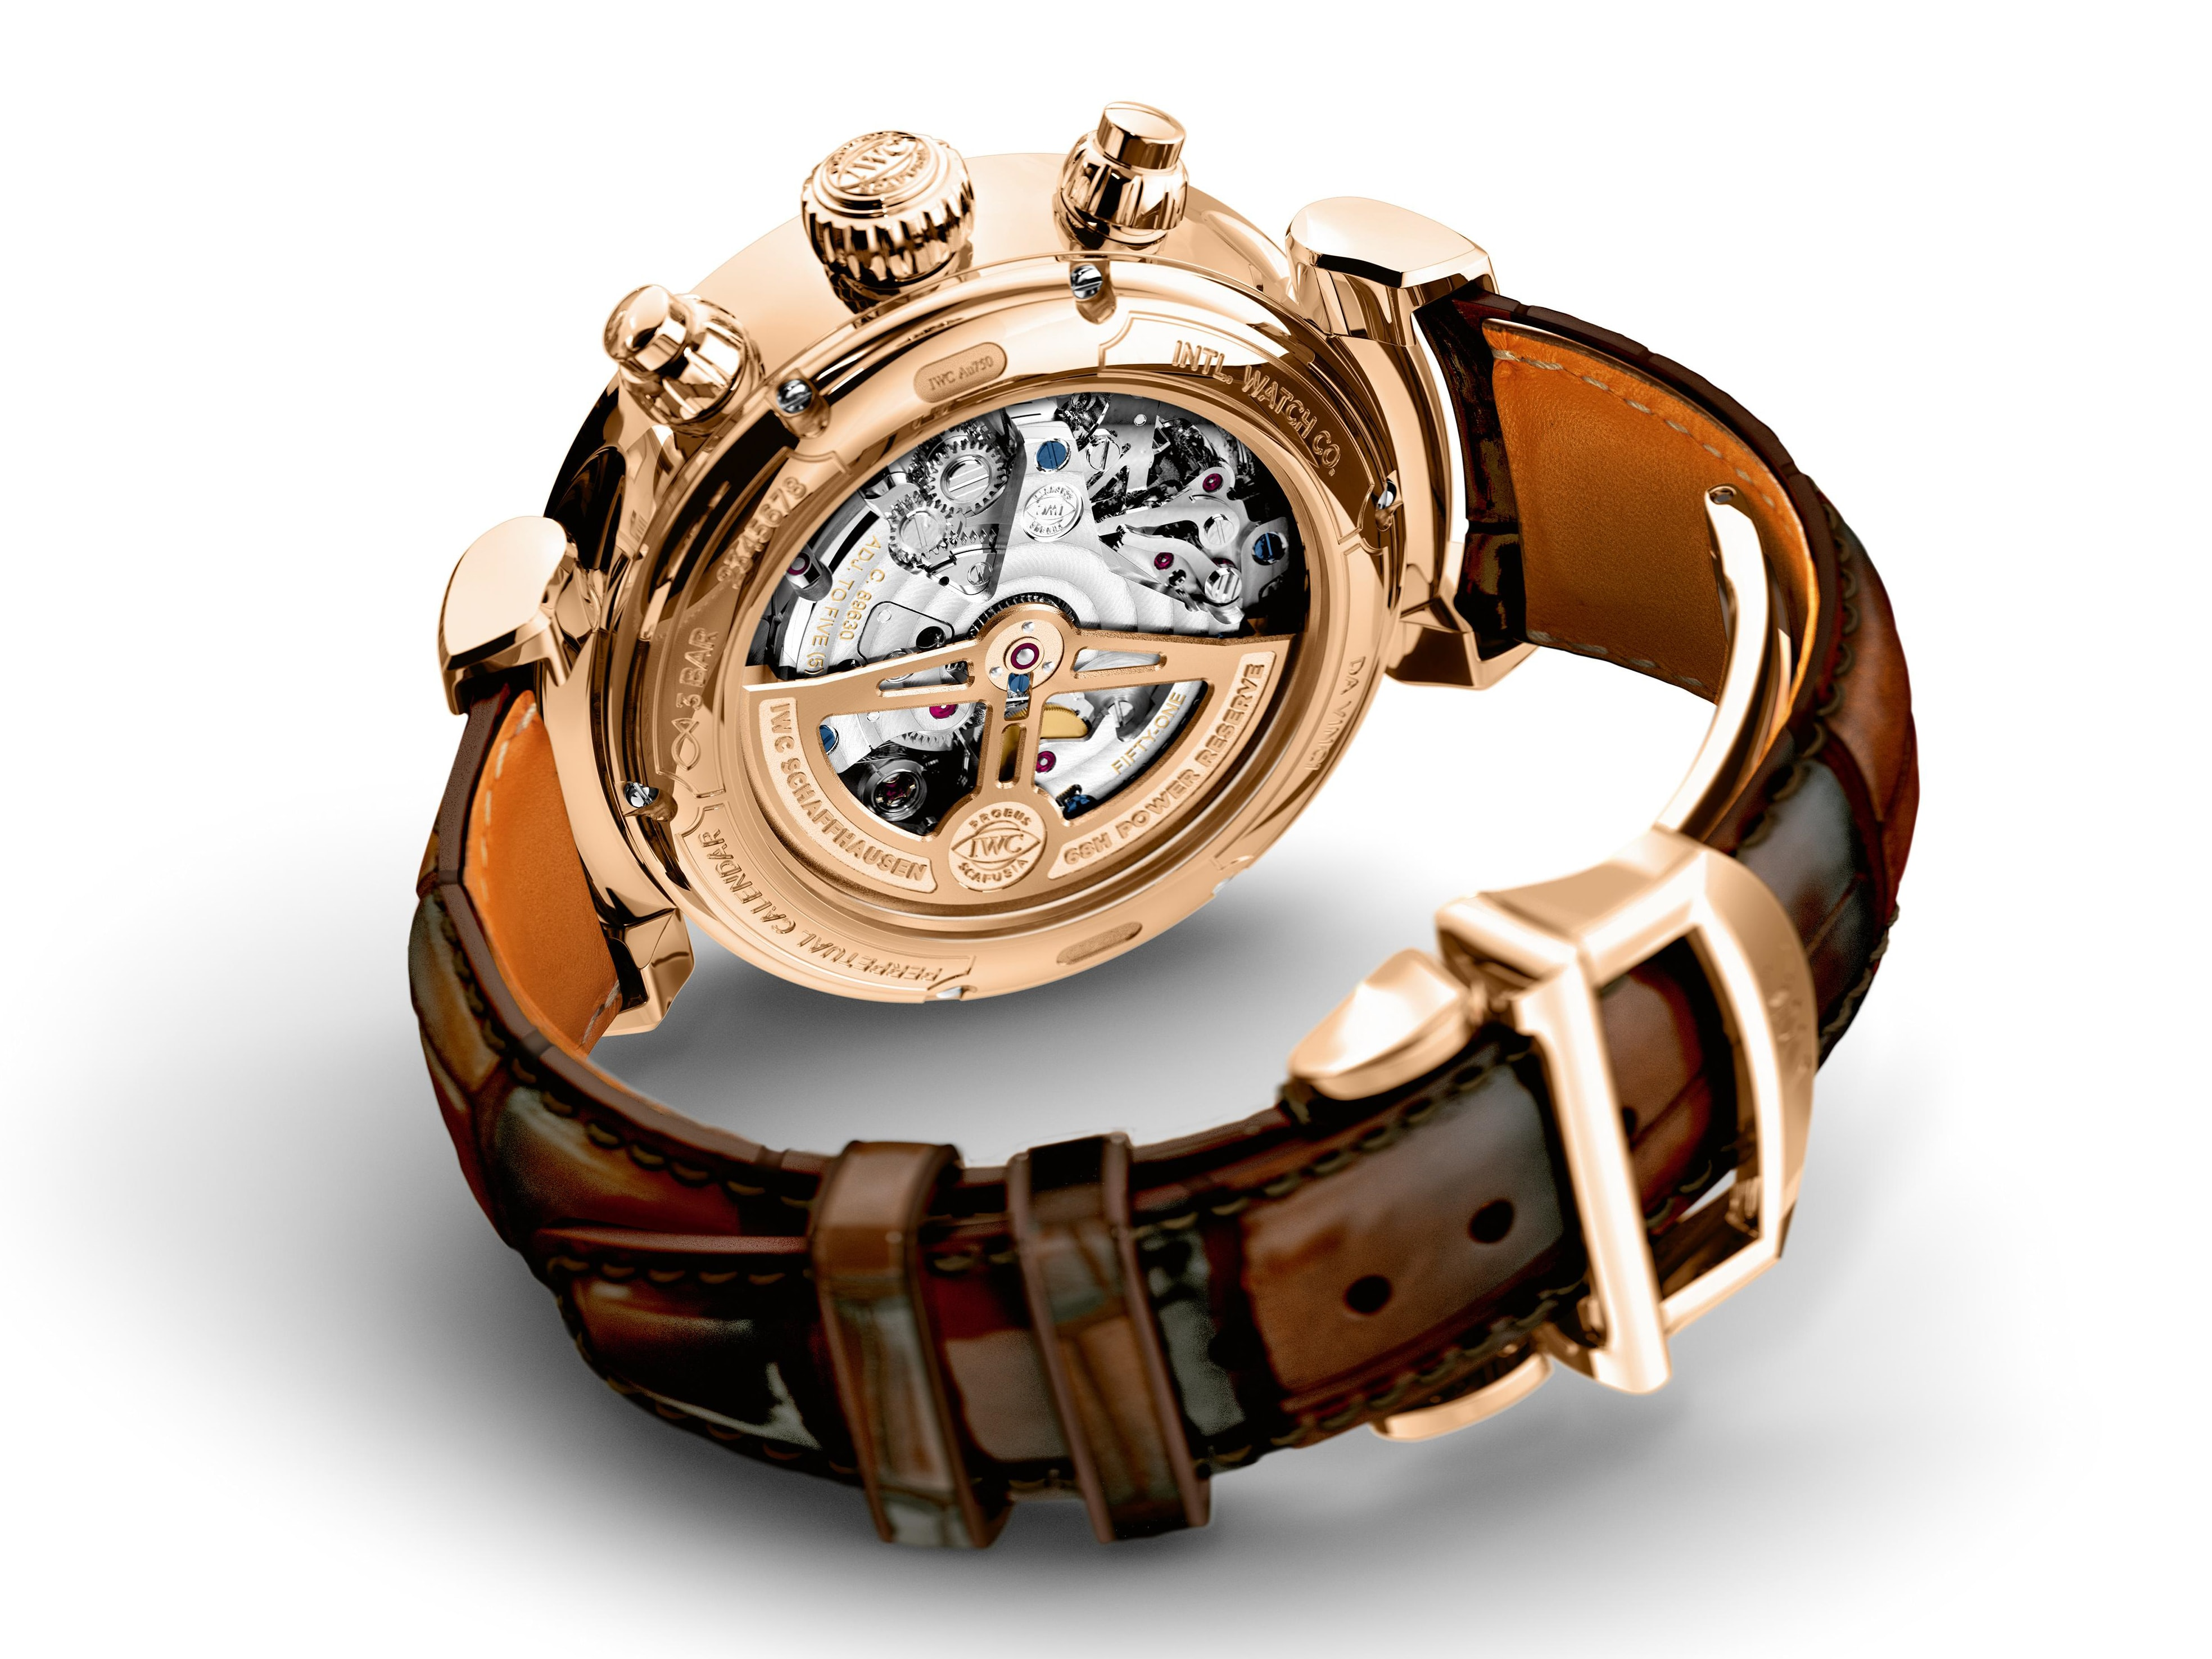 IWC Perpetual Calendar Chronograph Ref. IW392101 movement Introducing: Three New Da Vinci Watches From IWC, Including 2 Ladies' Timepieces, And A New Da Vinci Perpetual Chronograph Introducing: Three New Da Vinci Watches From IWC, Including 2 Ladies' Timepieces, And A New Da Vinci Perpetual Chronograph IW392101 Lifestyle Back